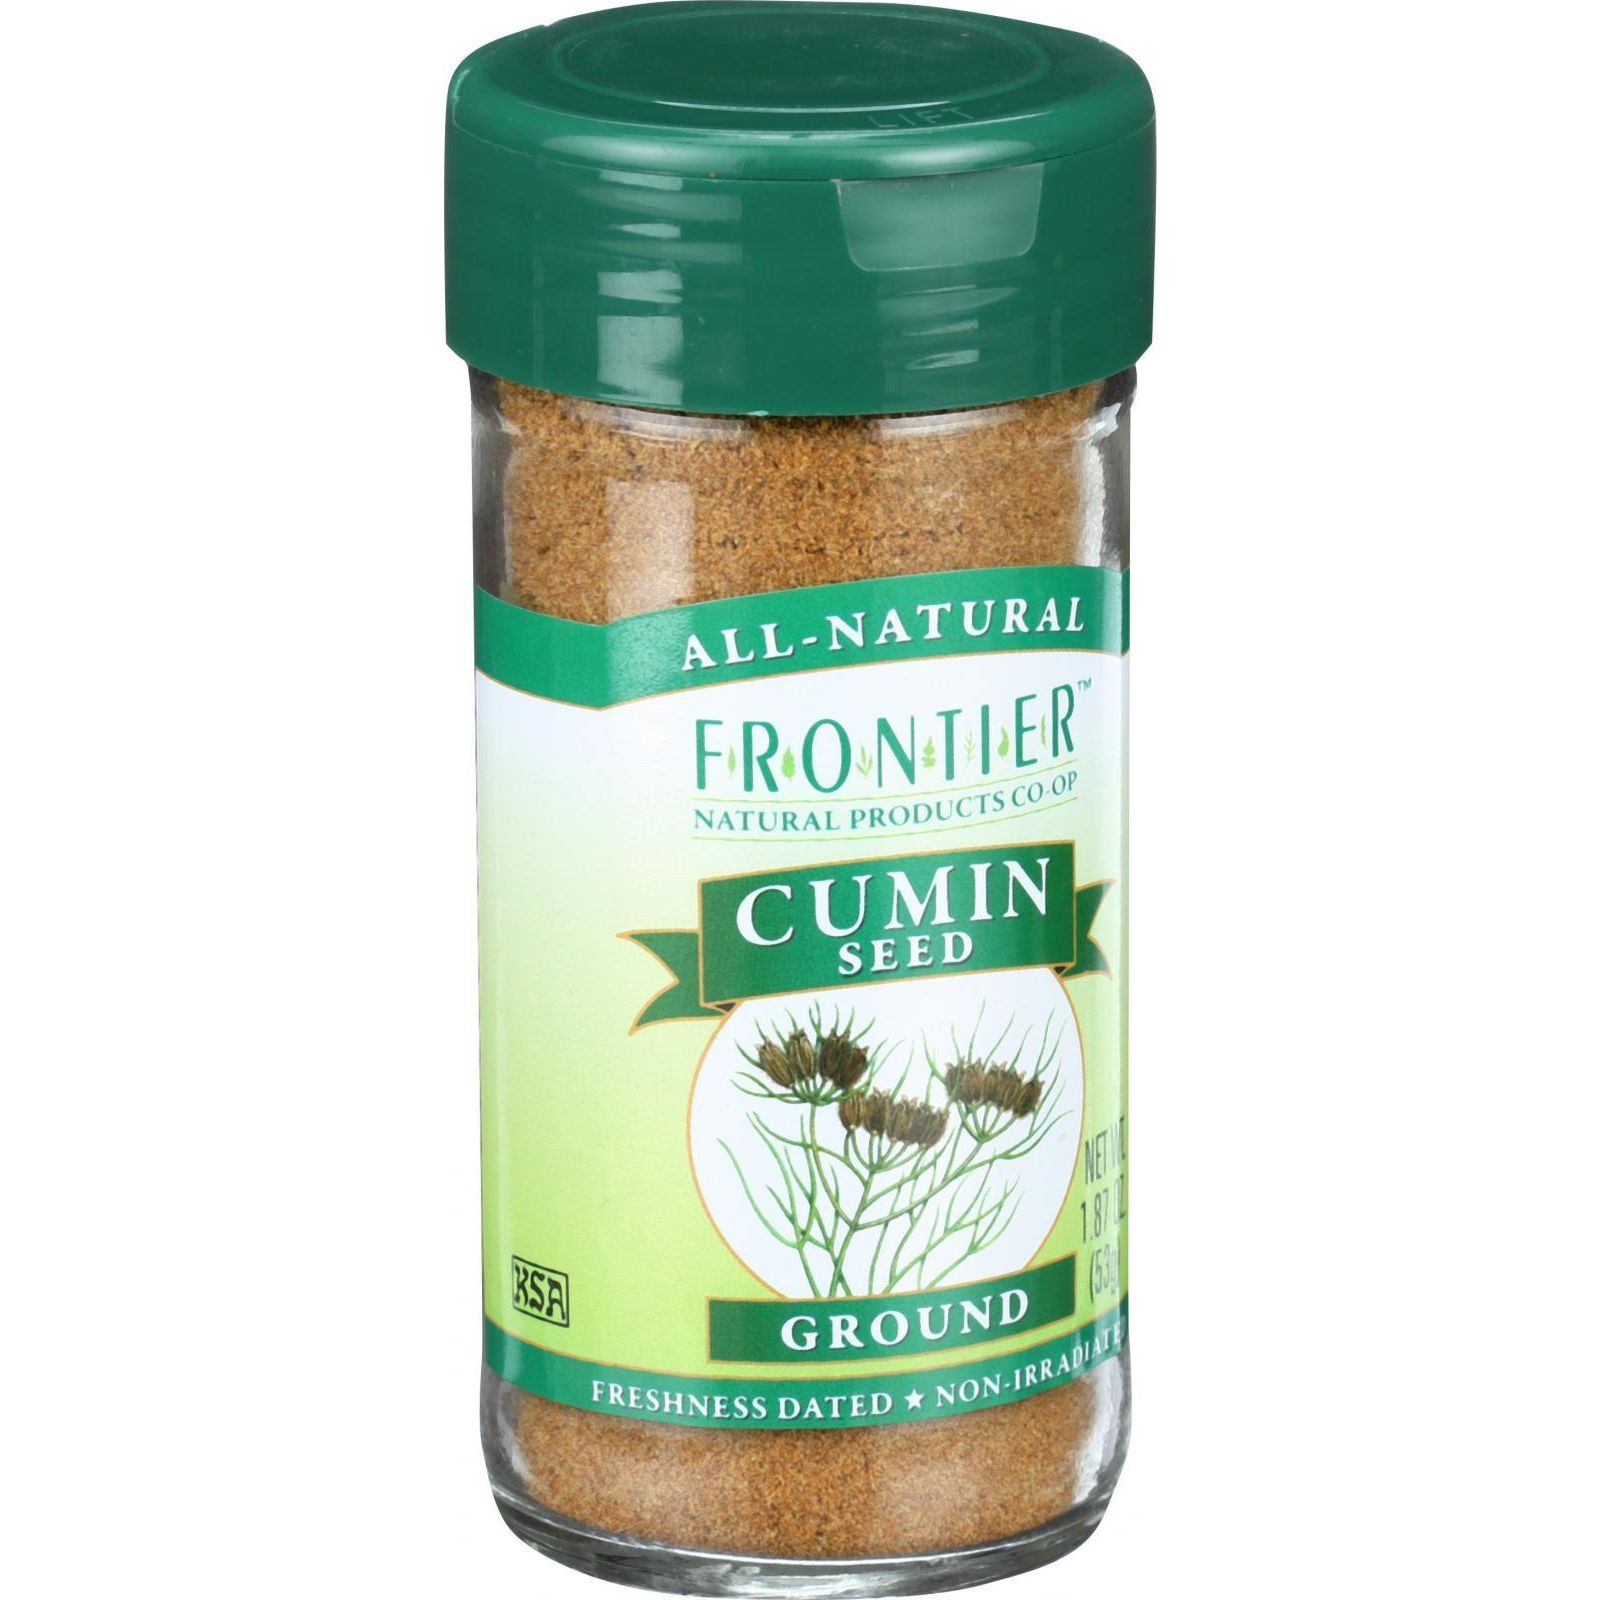 Frontier Natural Products Cumin Seed Ground, 1.6 Oz